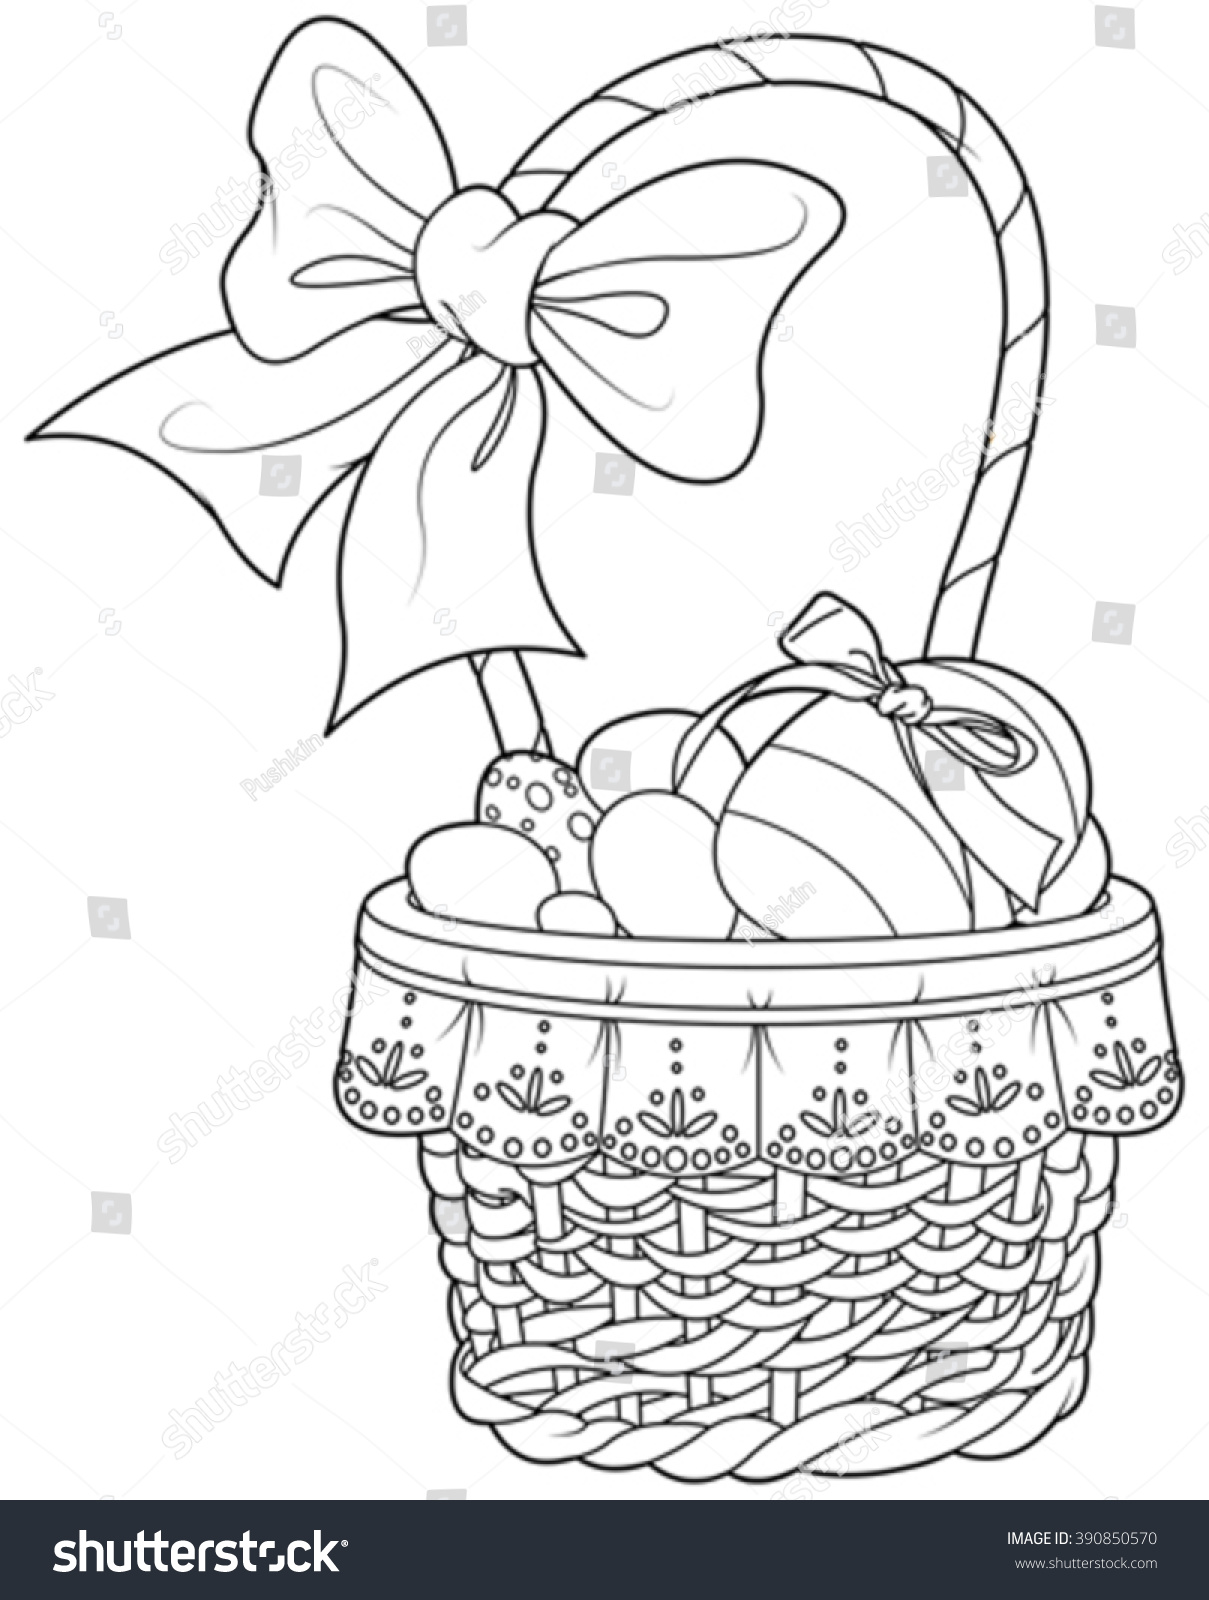 Coloring Page Pretty Easter Basket Full Stock Vector (2018 ...